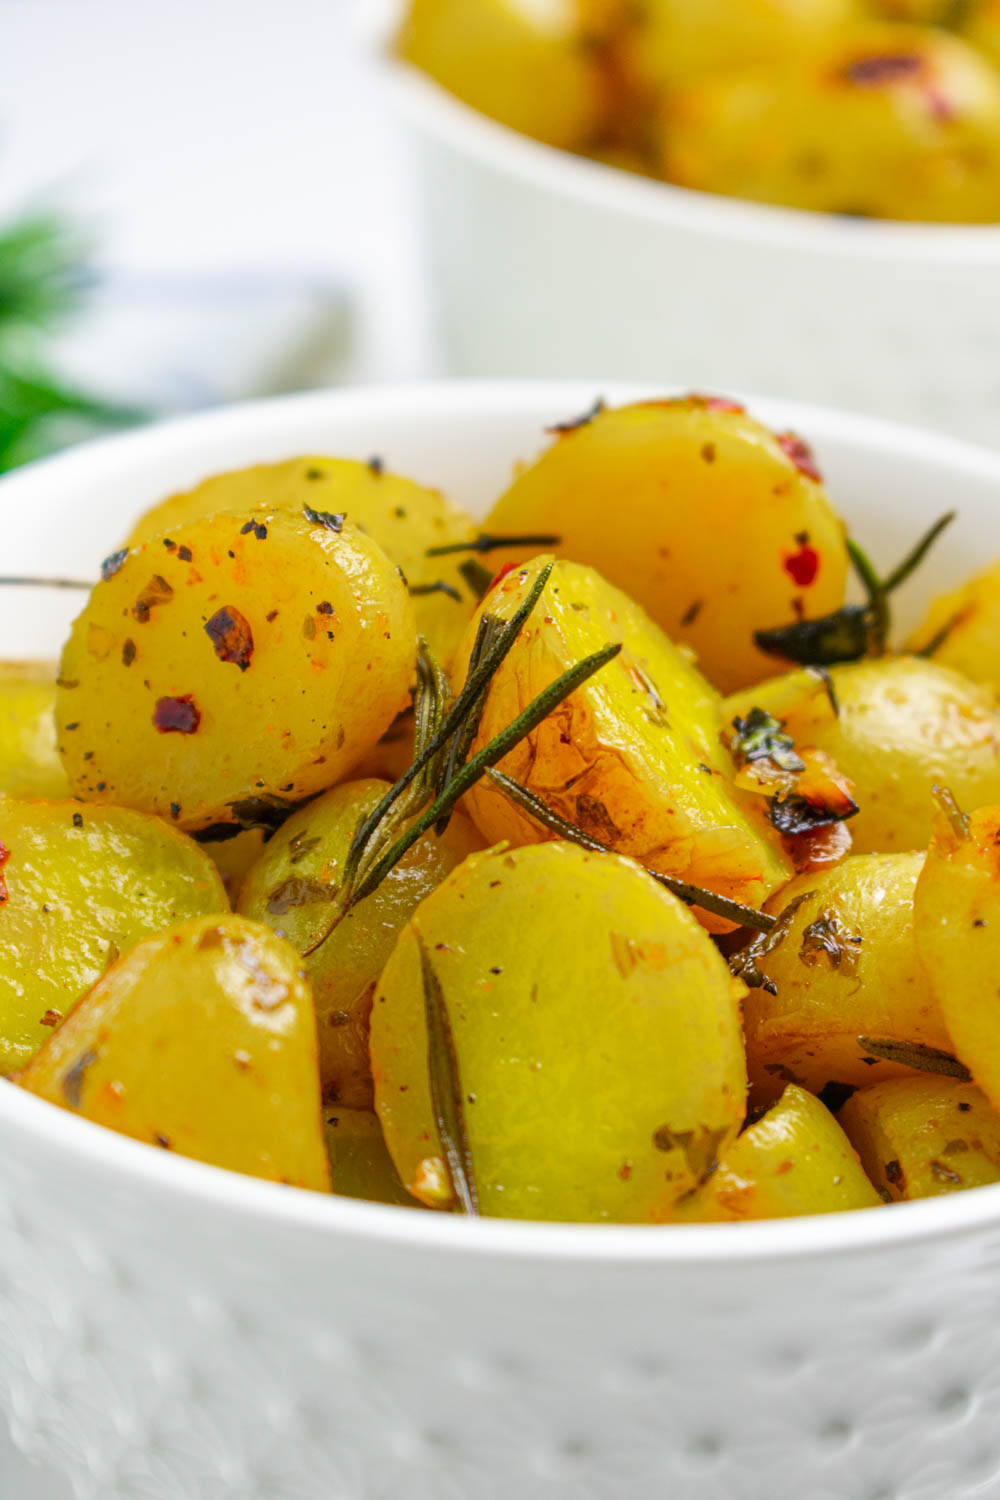 Crispy on the outside, fluffy and sweet on the inside. That's what these Garlic Lemon Herb Roasted Potatoes look and taste like.